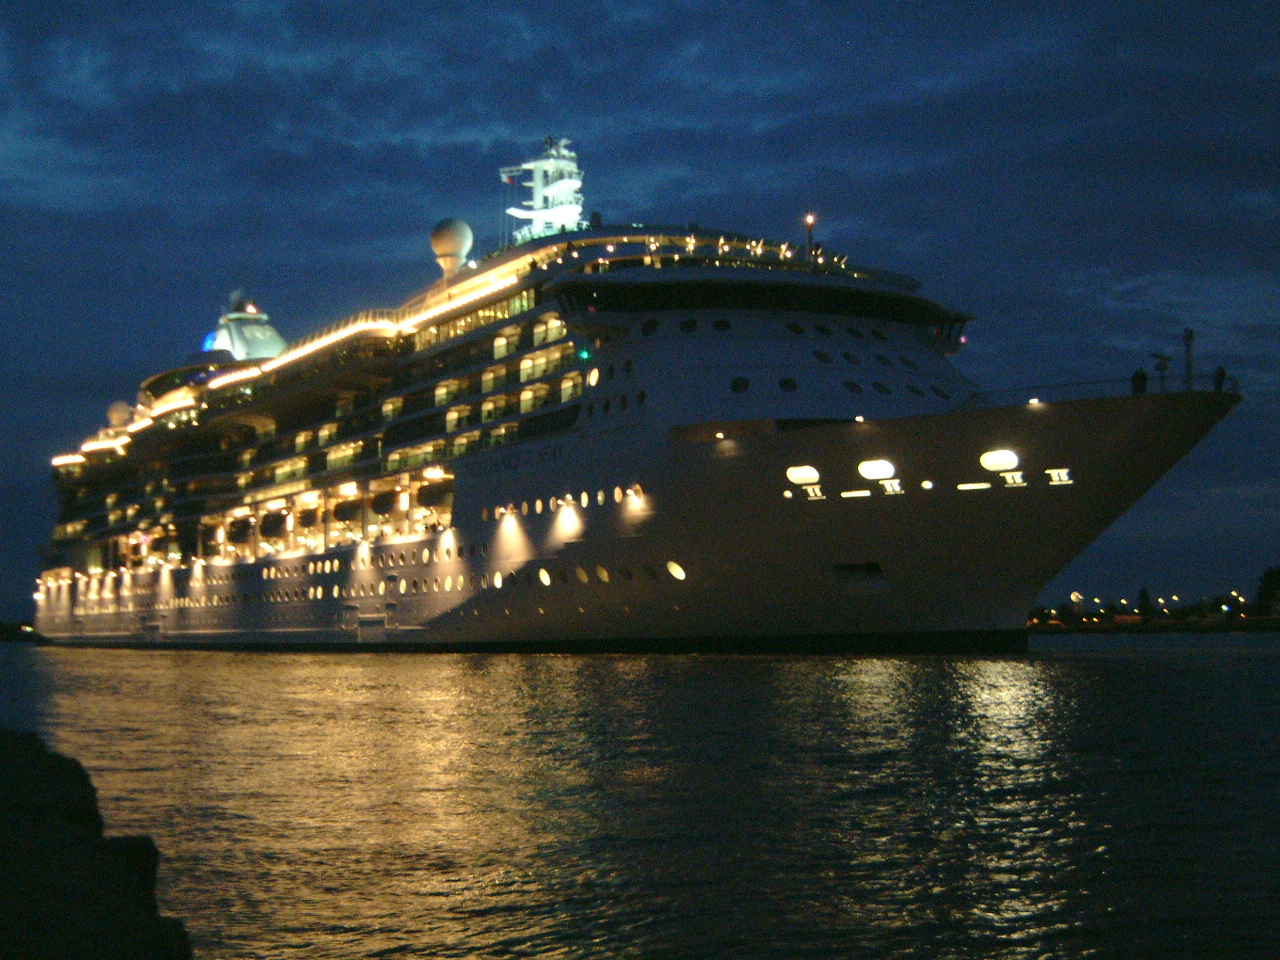 maartent boat pleasure cruise ocean liner ship lights night